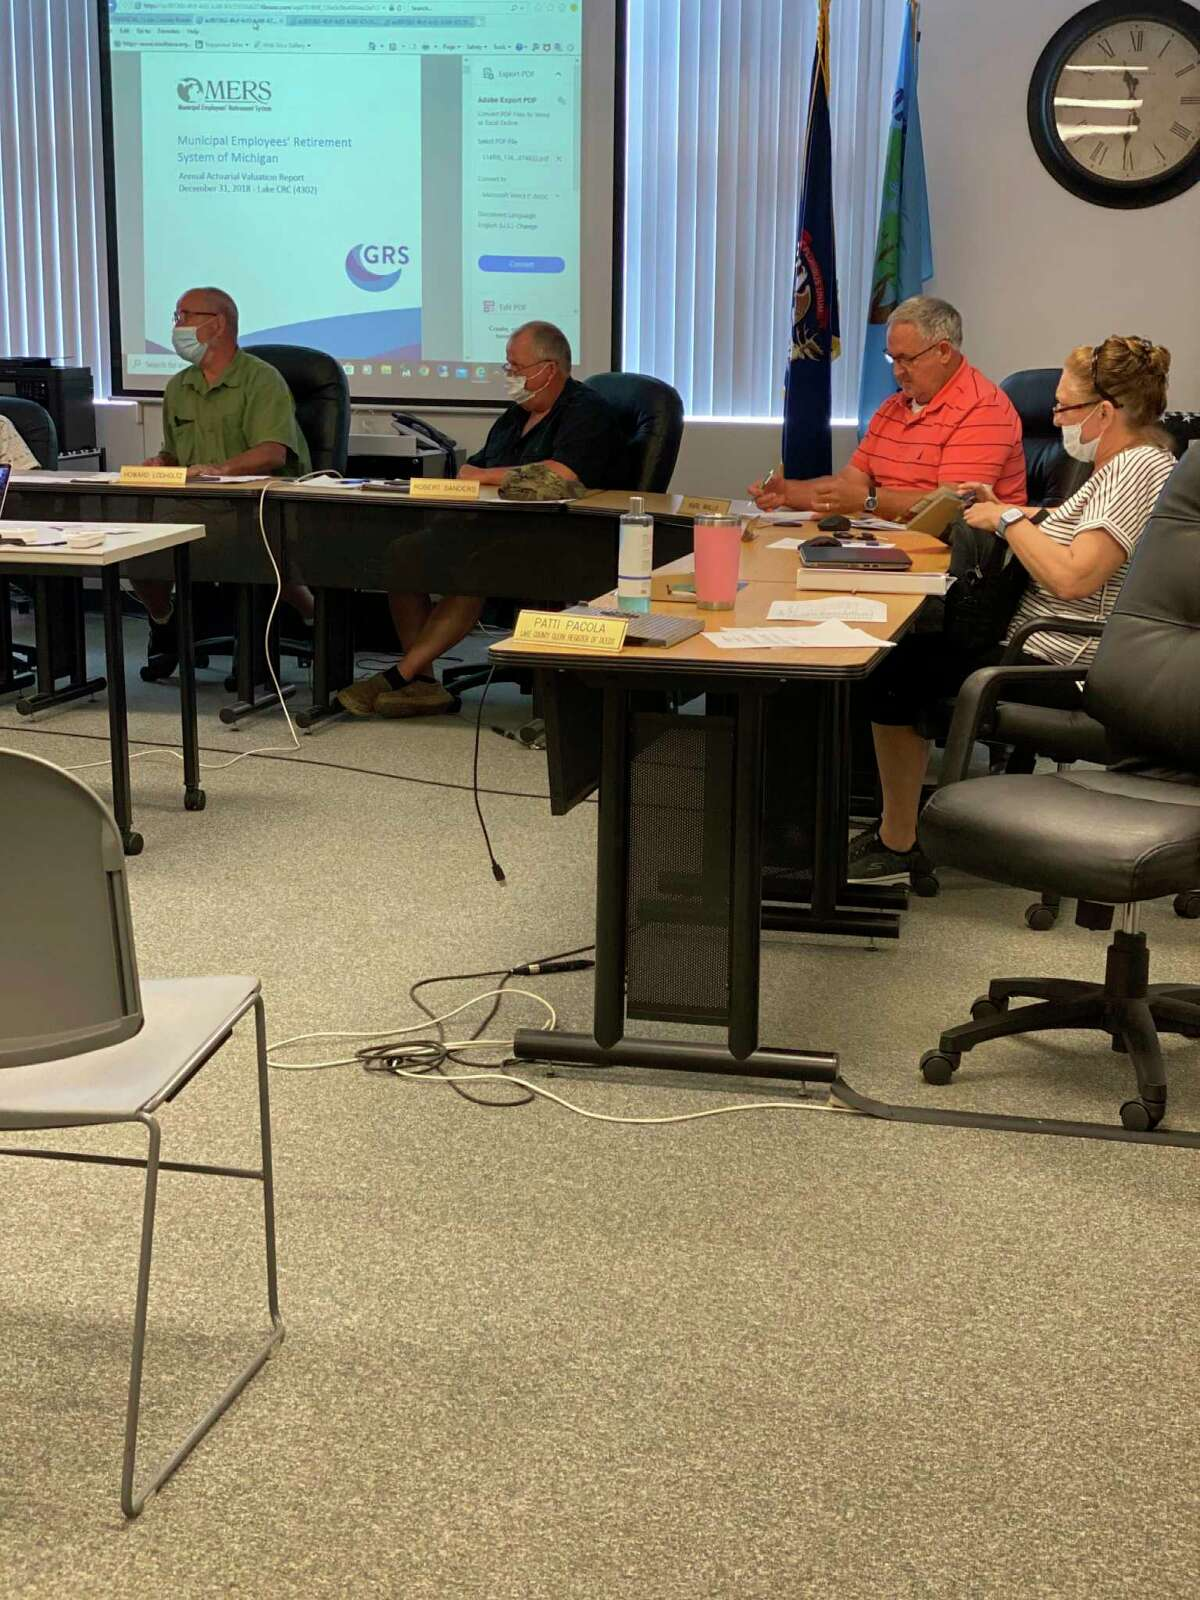 The Lake County Board of Commissioners met in person for the first time since mid-March, at its meeting June 10. According to executive orders from Gov. Gretchen Whitmer, social distancing and face coverings are still required in public areas. (Submitted photo)